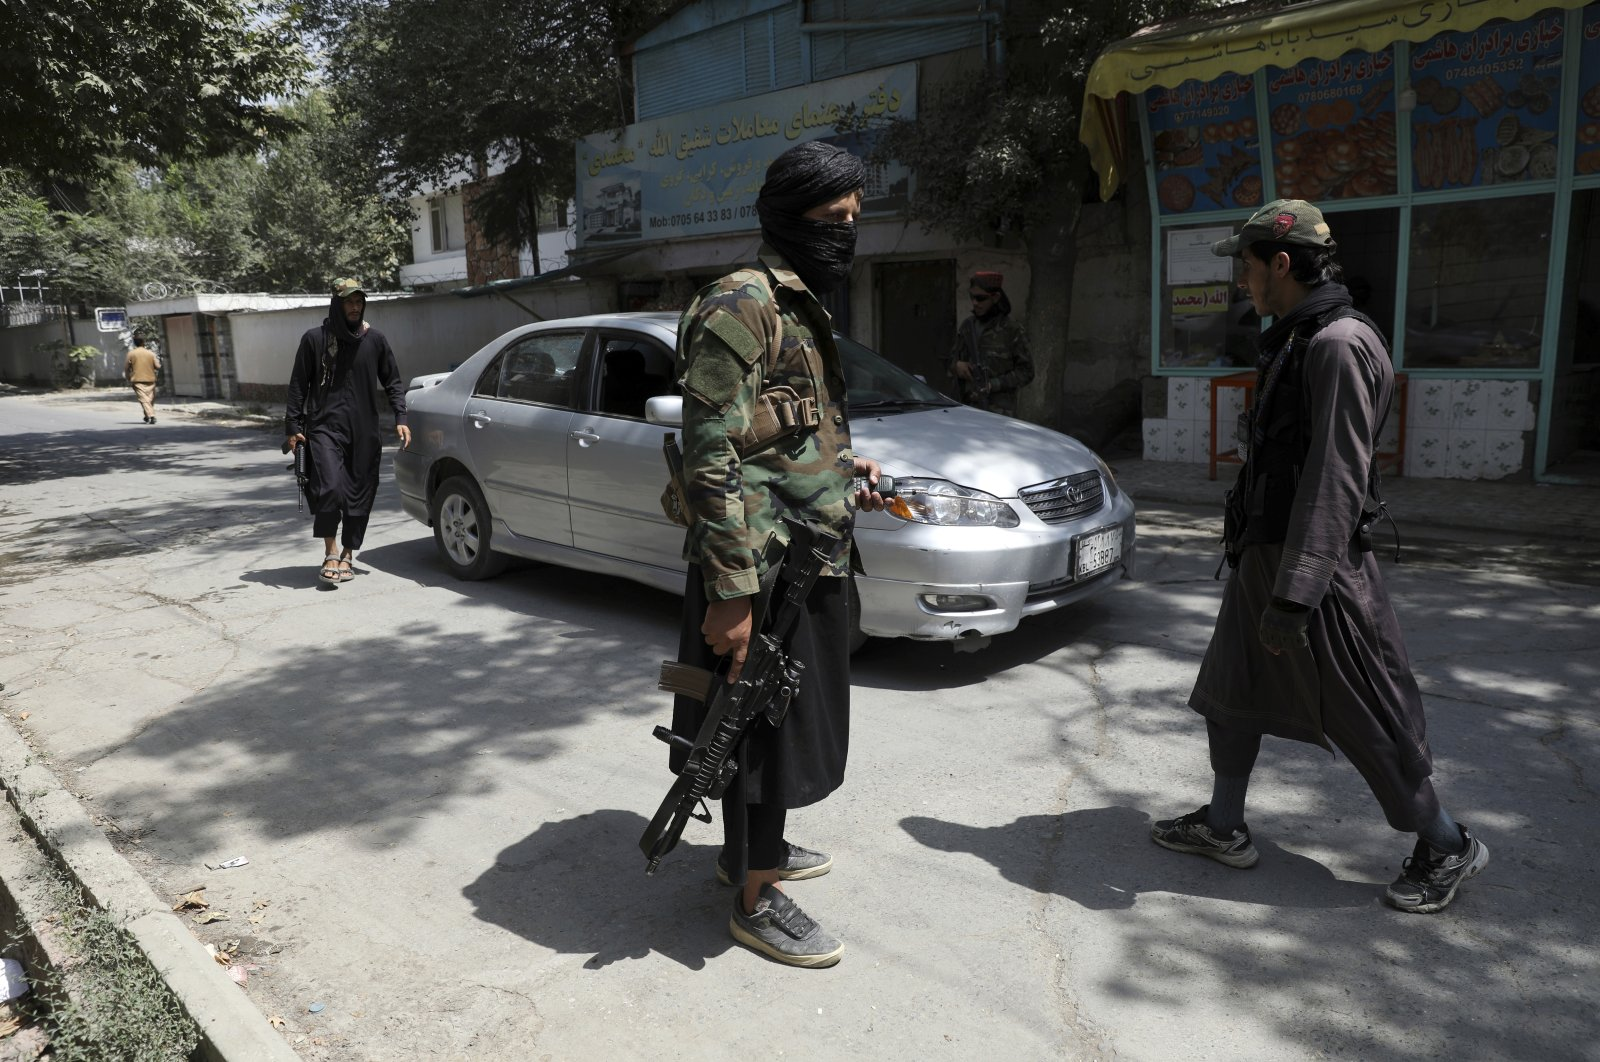 Taliban fighters stand guard at a checkpoint in the Wazir Akbar Khan neighborhood in the city of Kabul, Afghanistan, Aug. 22, 2021. (AP Photo)